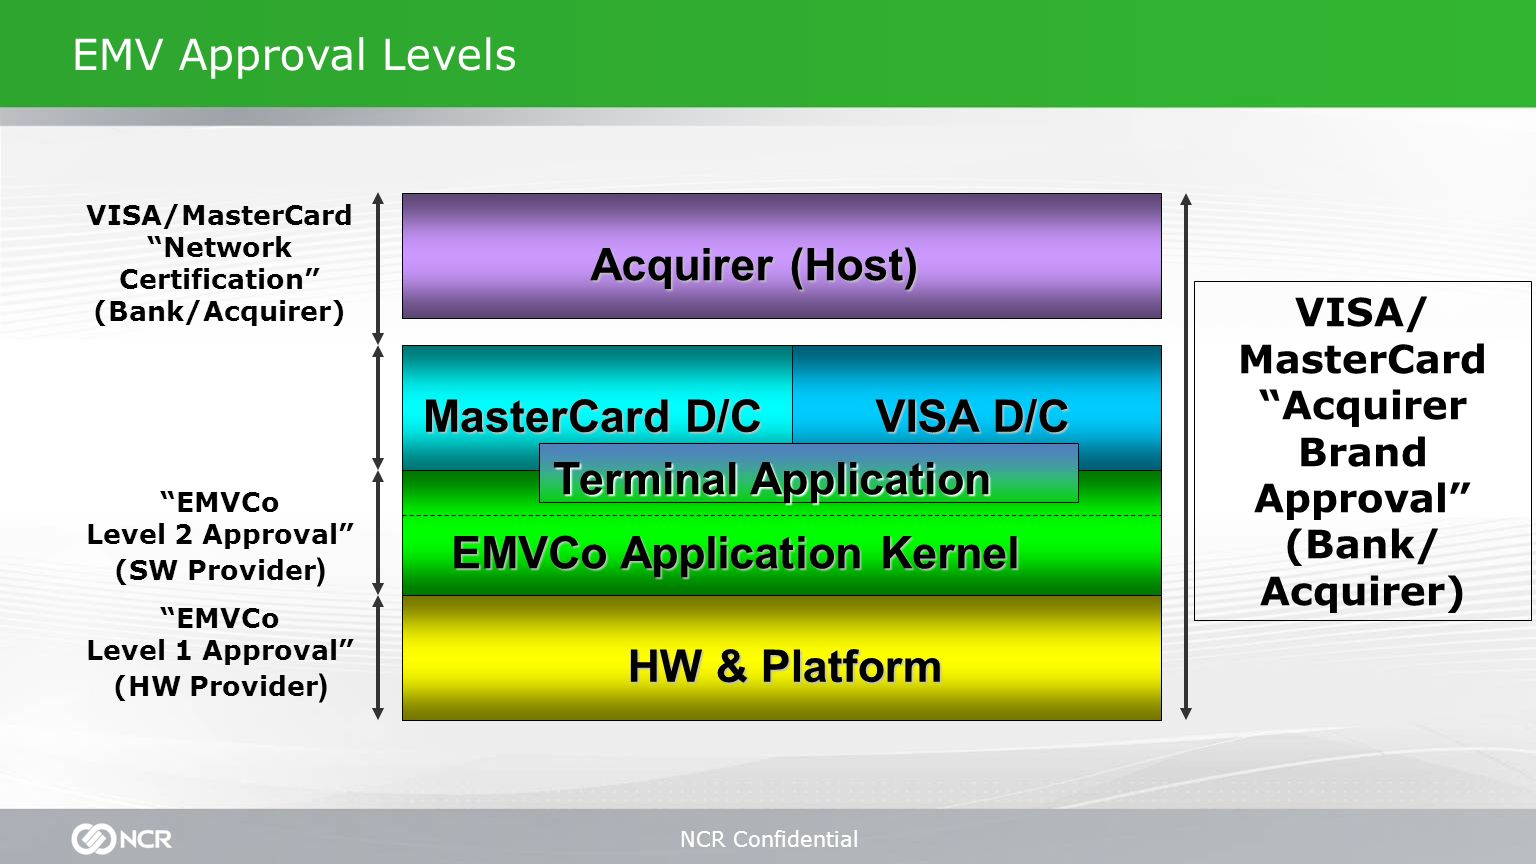 NCR Confidential EMV Approval Levels HW & Platform Terminal Application MasterCard D/C VISA D/C EMVCo Level 2 Approval (SW Provider ) Acquirer (Host) VISA/MasterCard Network Certification (Bank/Acquirer) VISA/ MasterCard Acquirer Brand Approval (Bank/ Acquirer) EMVCo Application Kernel EMVCo Level 1 Approval (HW Provider )